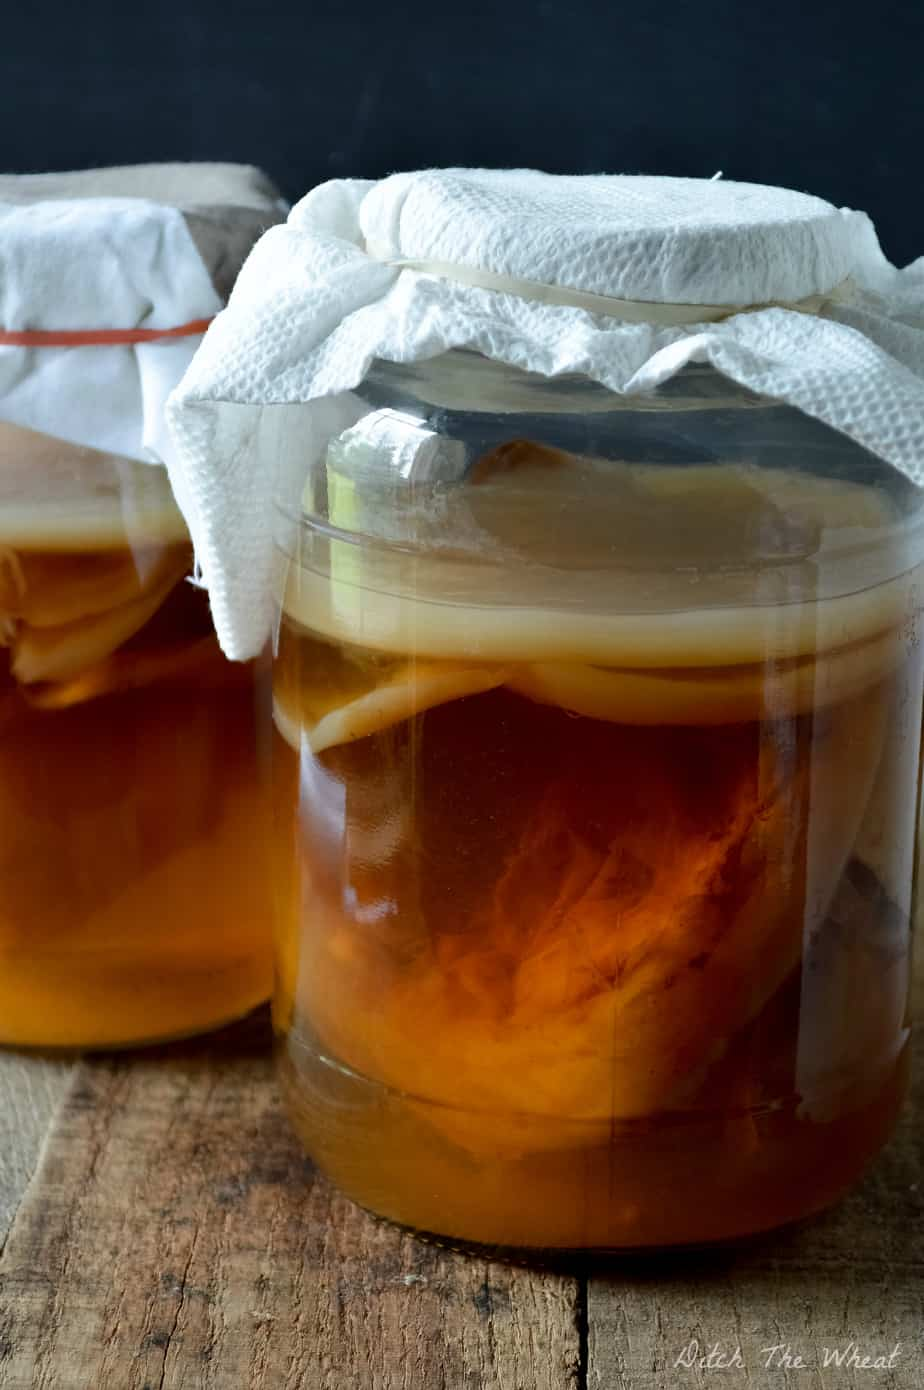 How to Grow a Kombucha Scoby from Bottled Kombucha